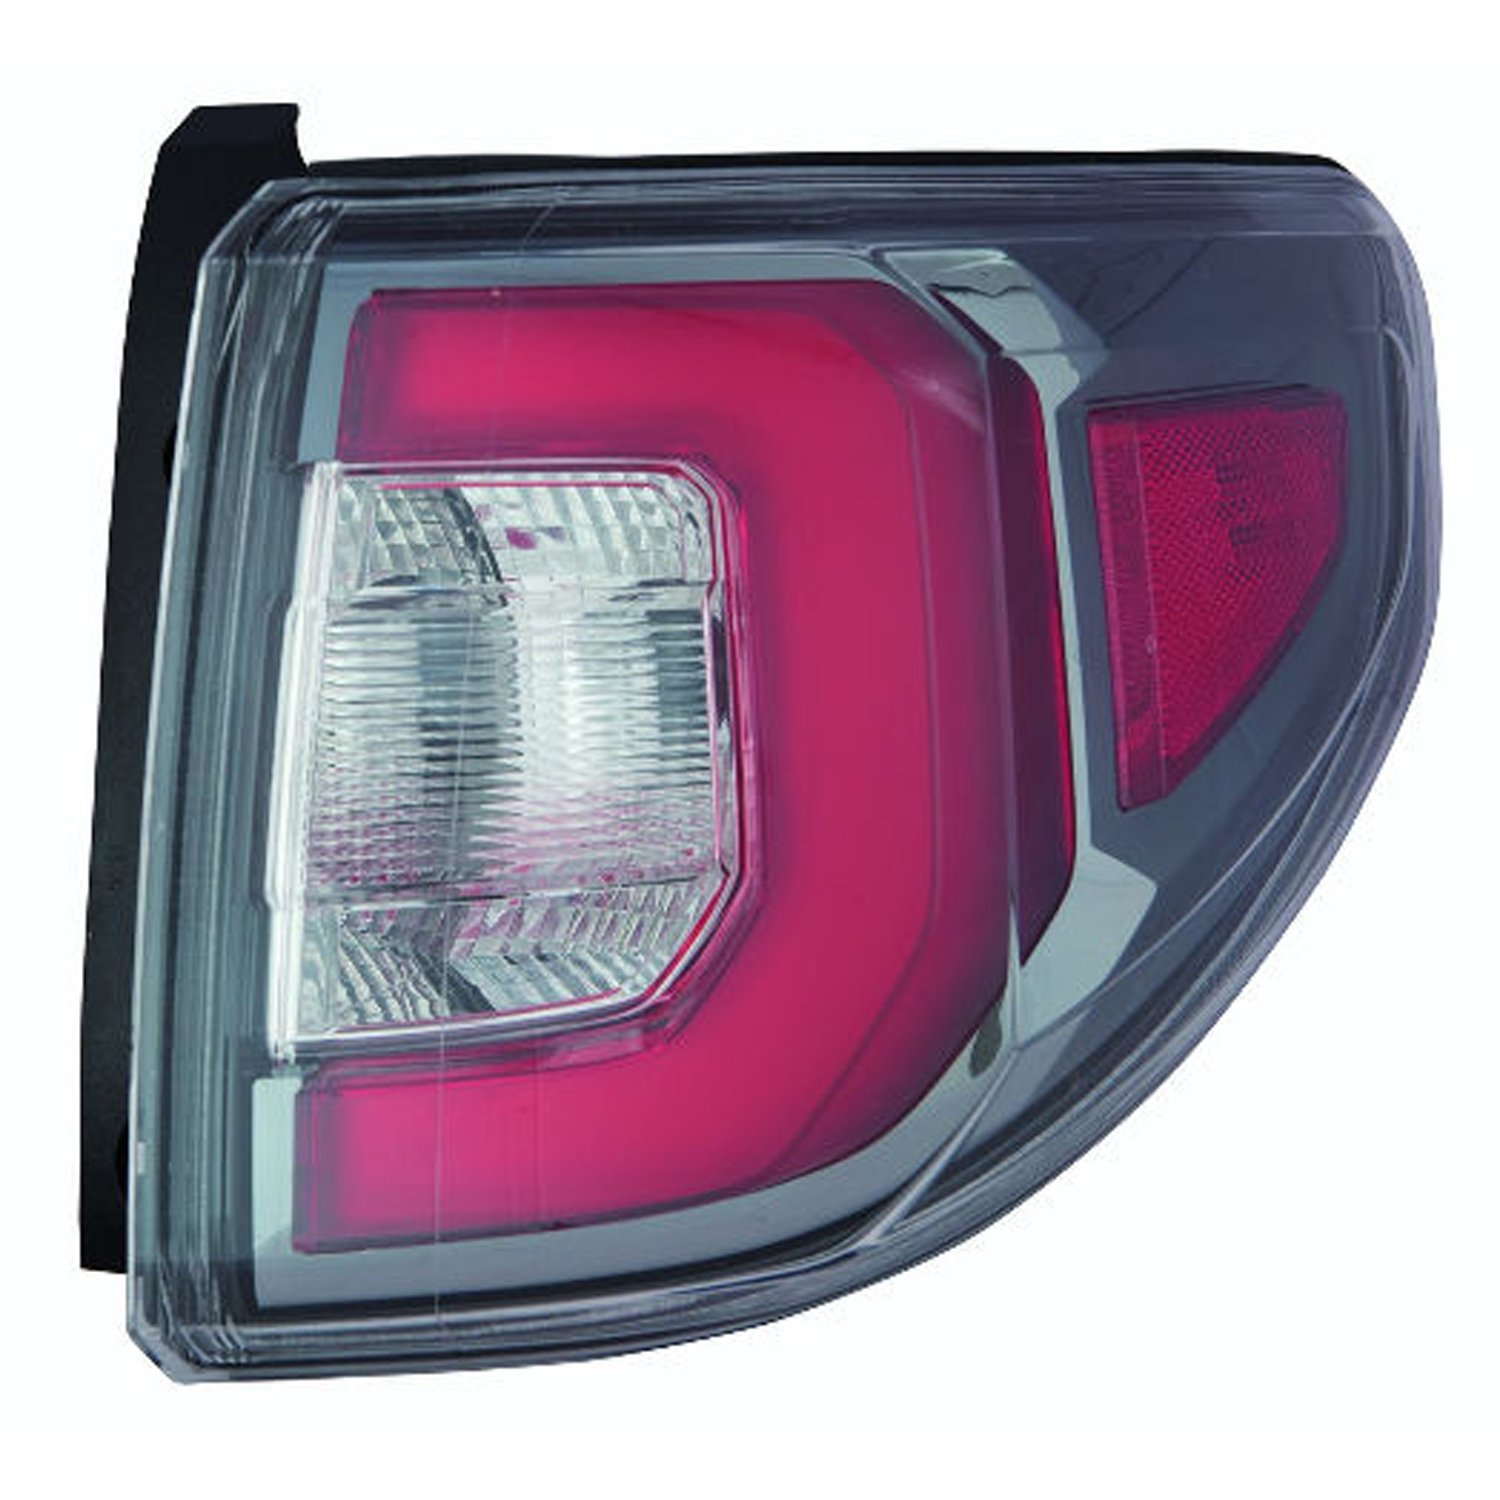 OE Replacement Tail Light Assembly GMC ACADIA 2013-2016 Multiple Manufacturers GM2804113N Partslink GM2804113